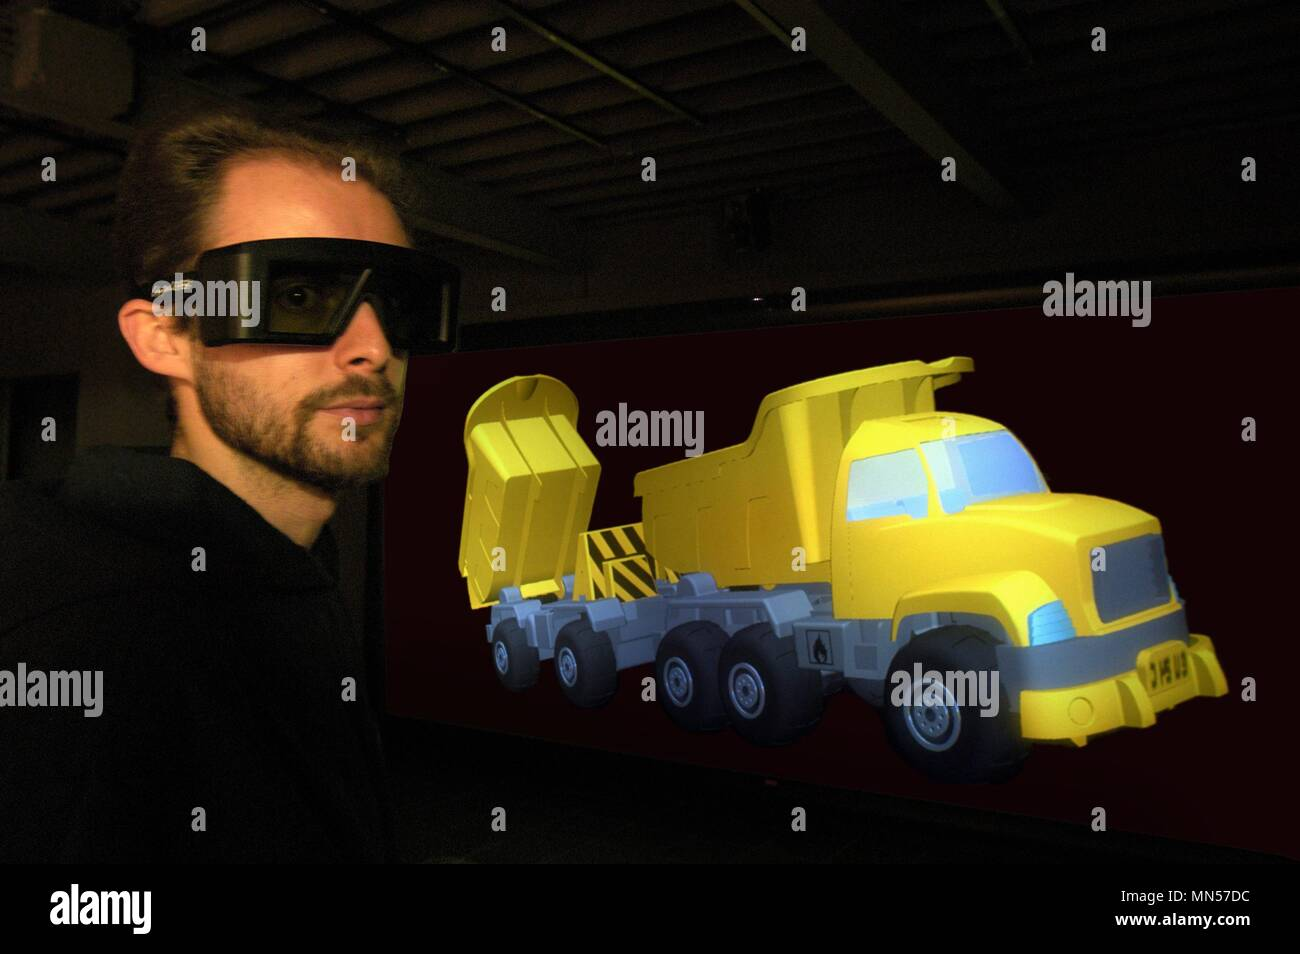 University of Milan - Bovisa (Italy), department of Design, laboratory of Virtual Models, three-dimensional projection of a truck - Stock Image